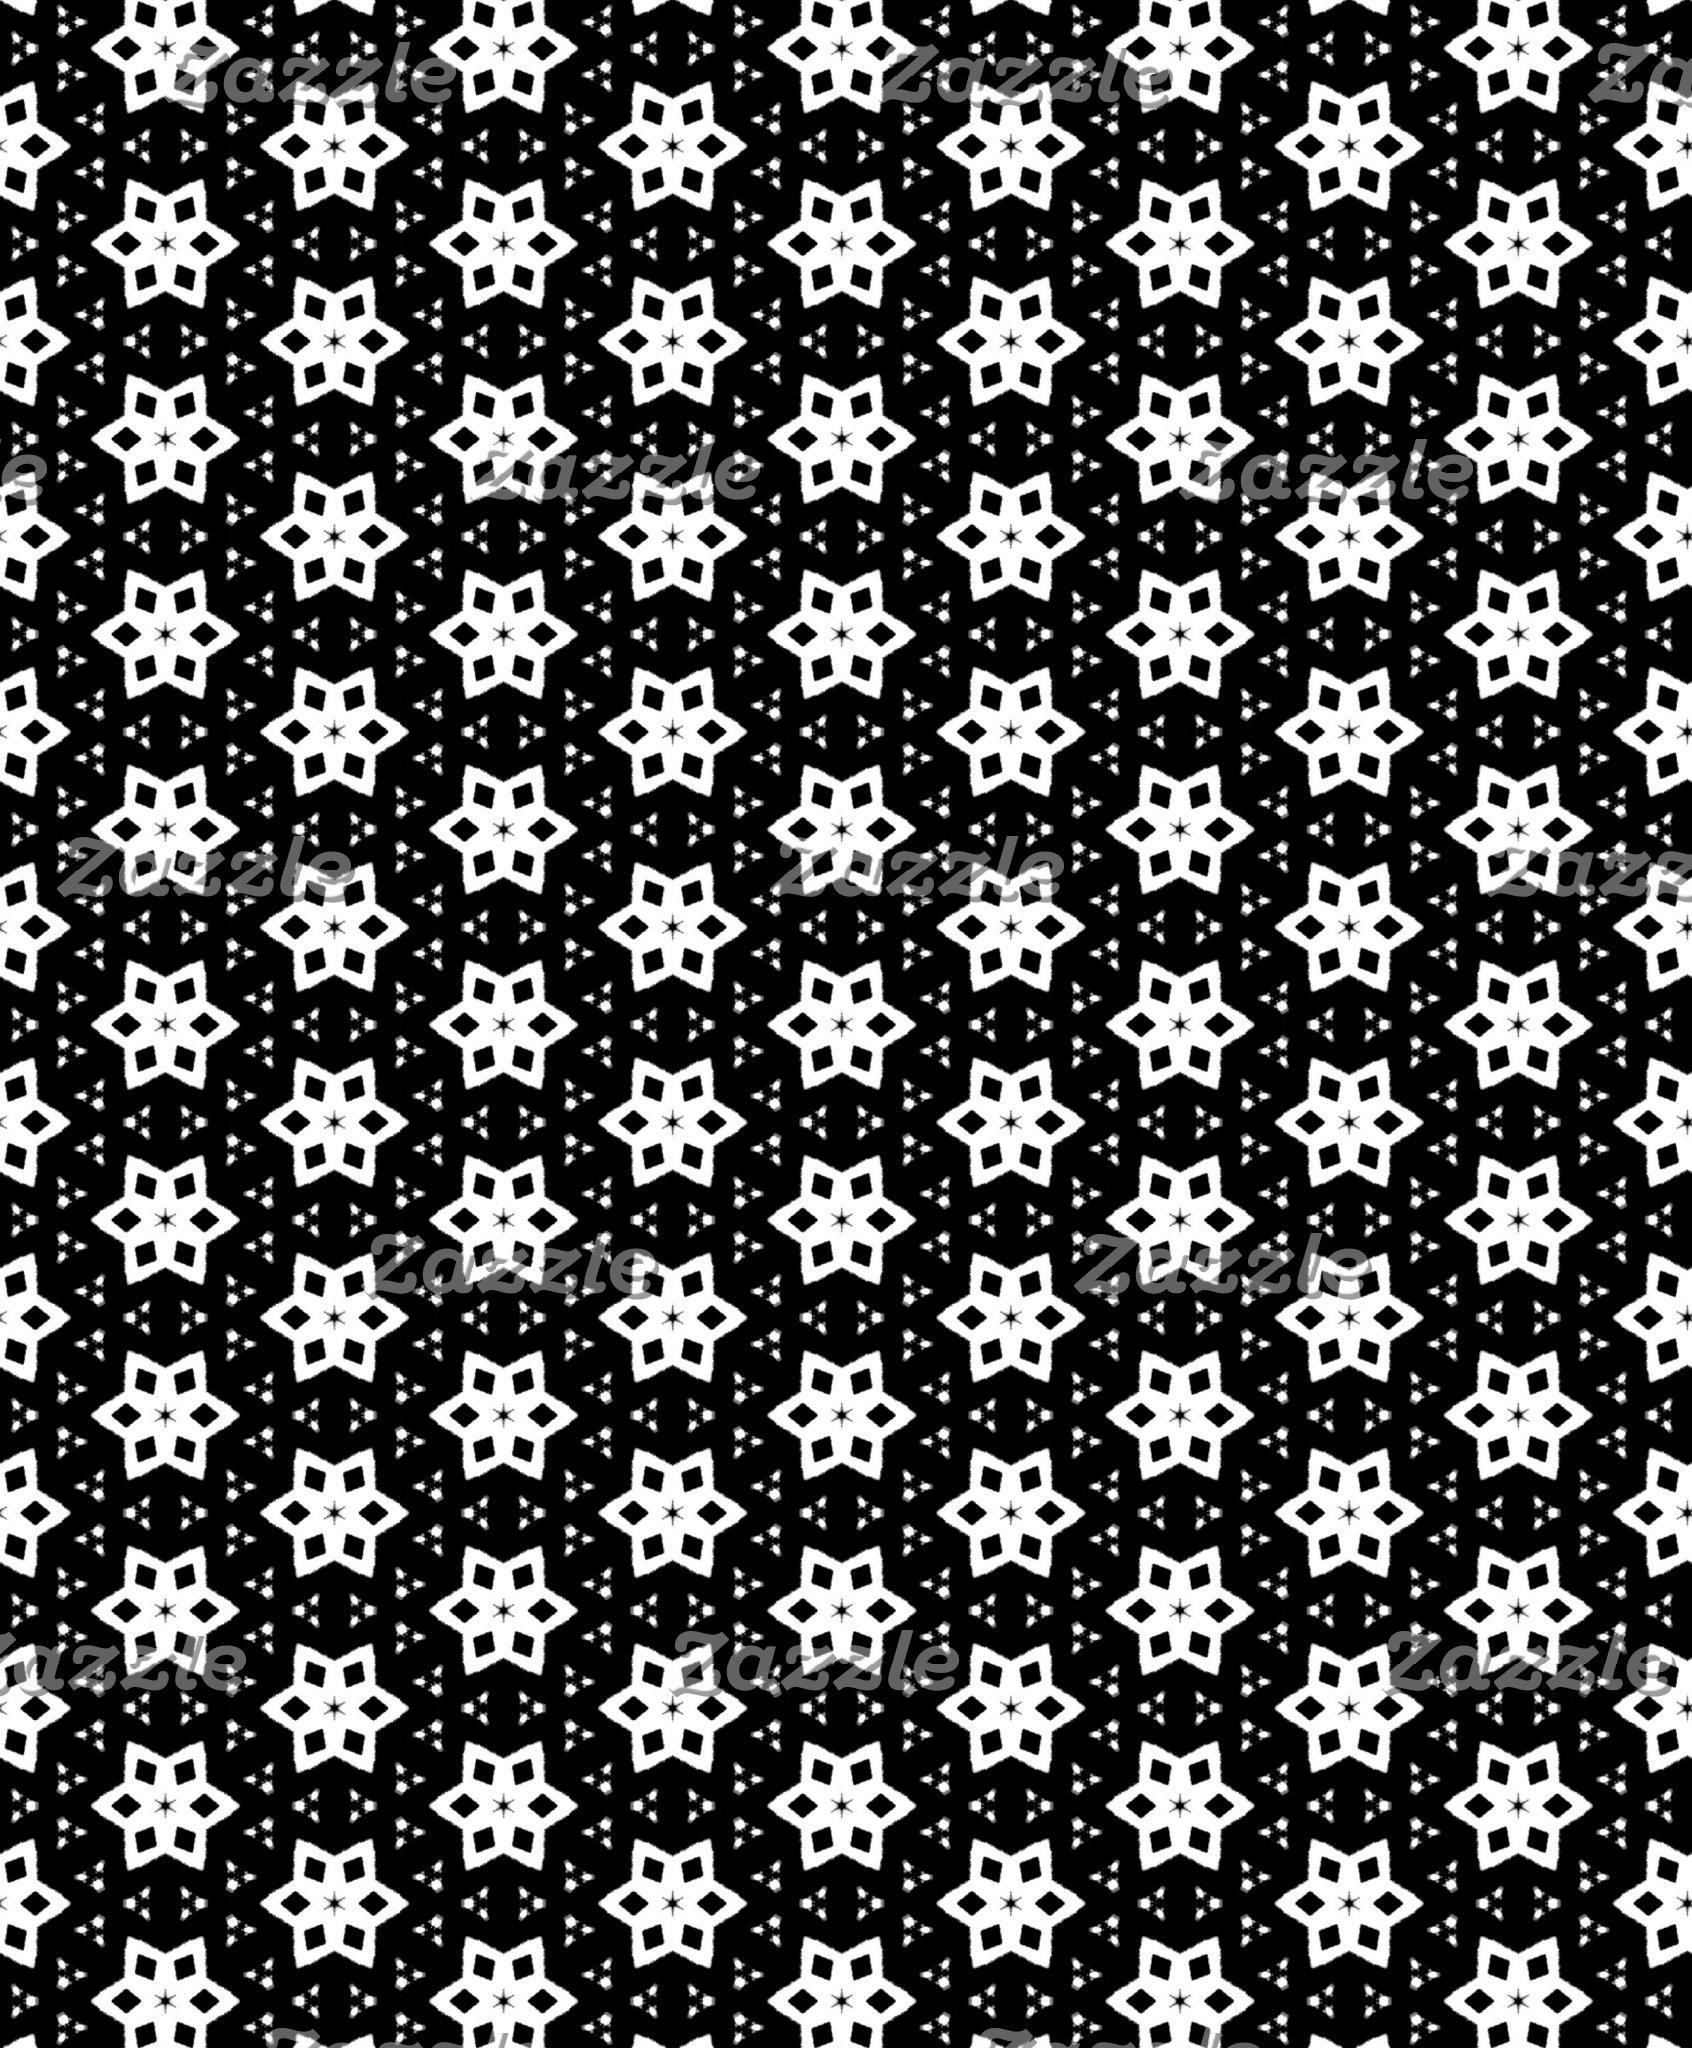 Black & White Patterns | Hexagons IV